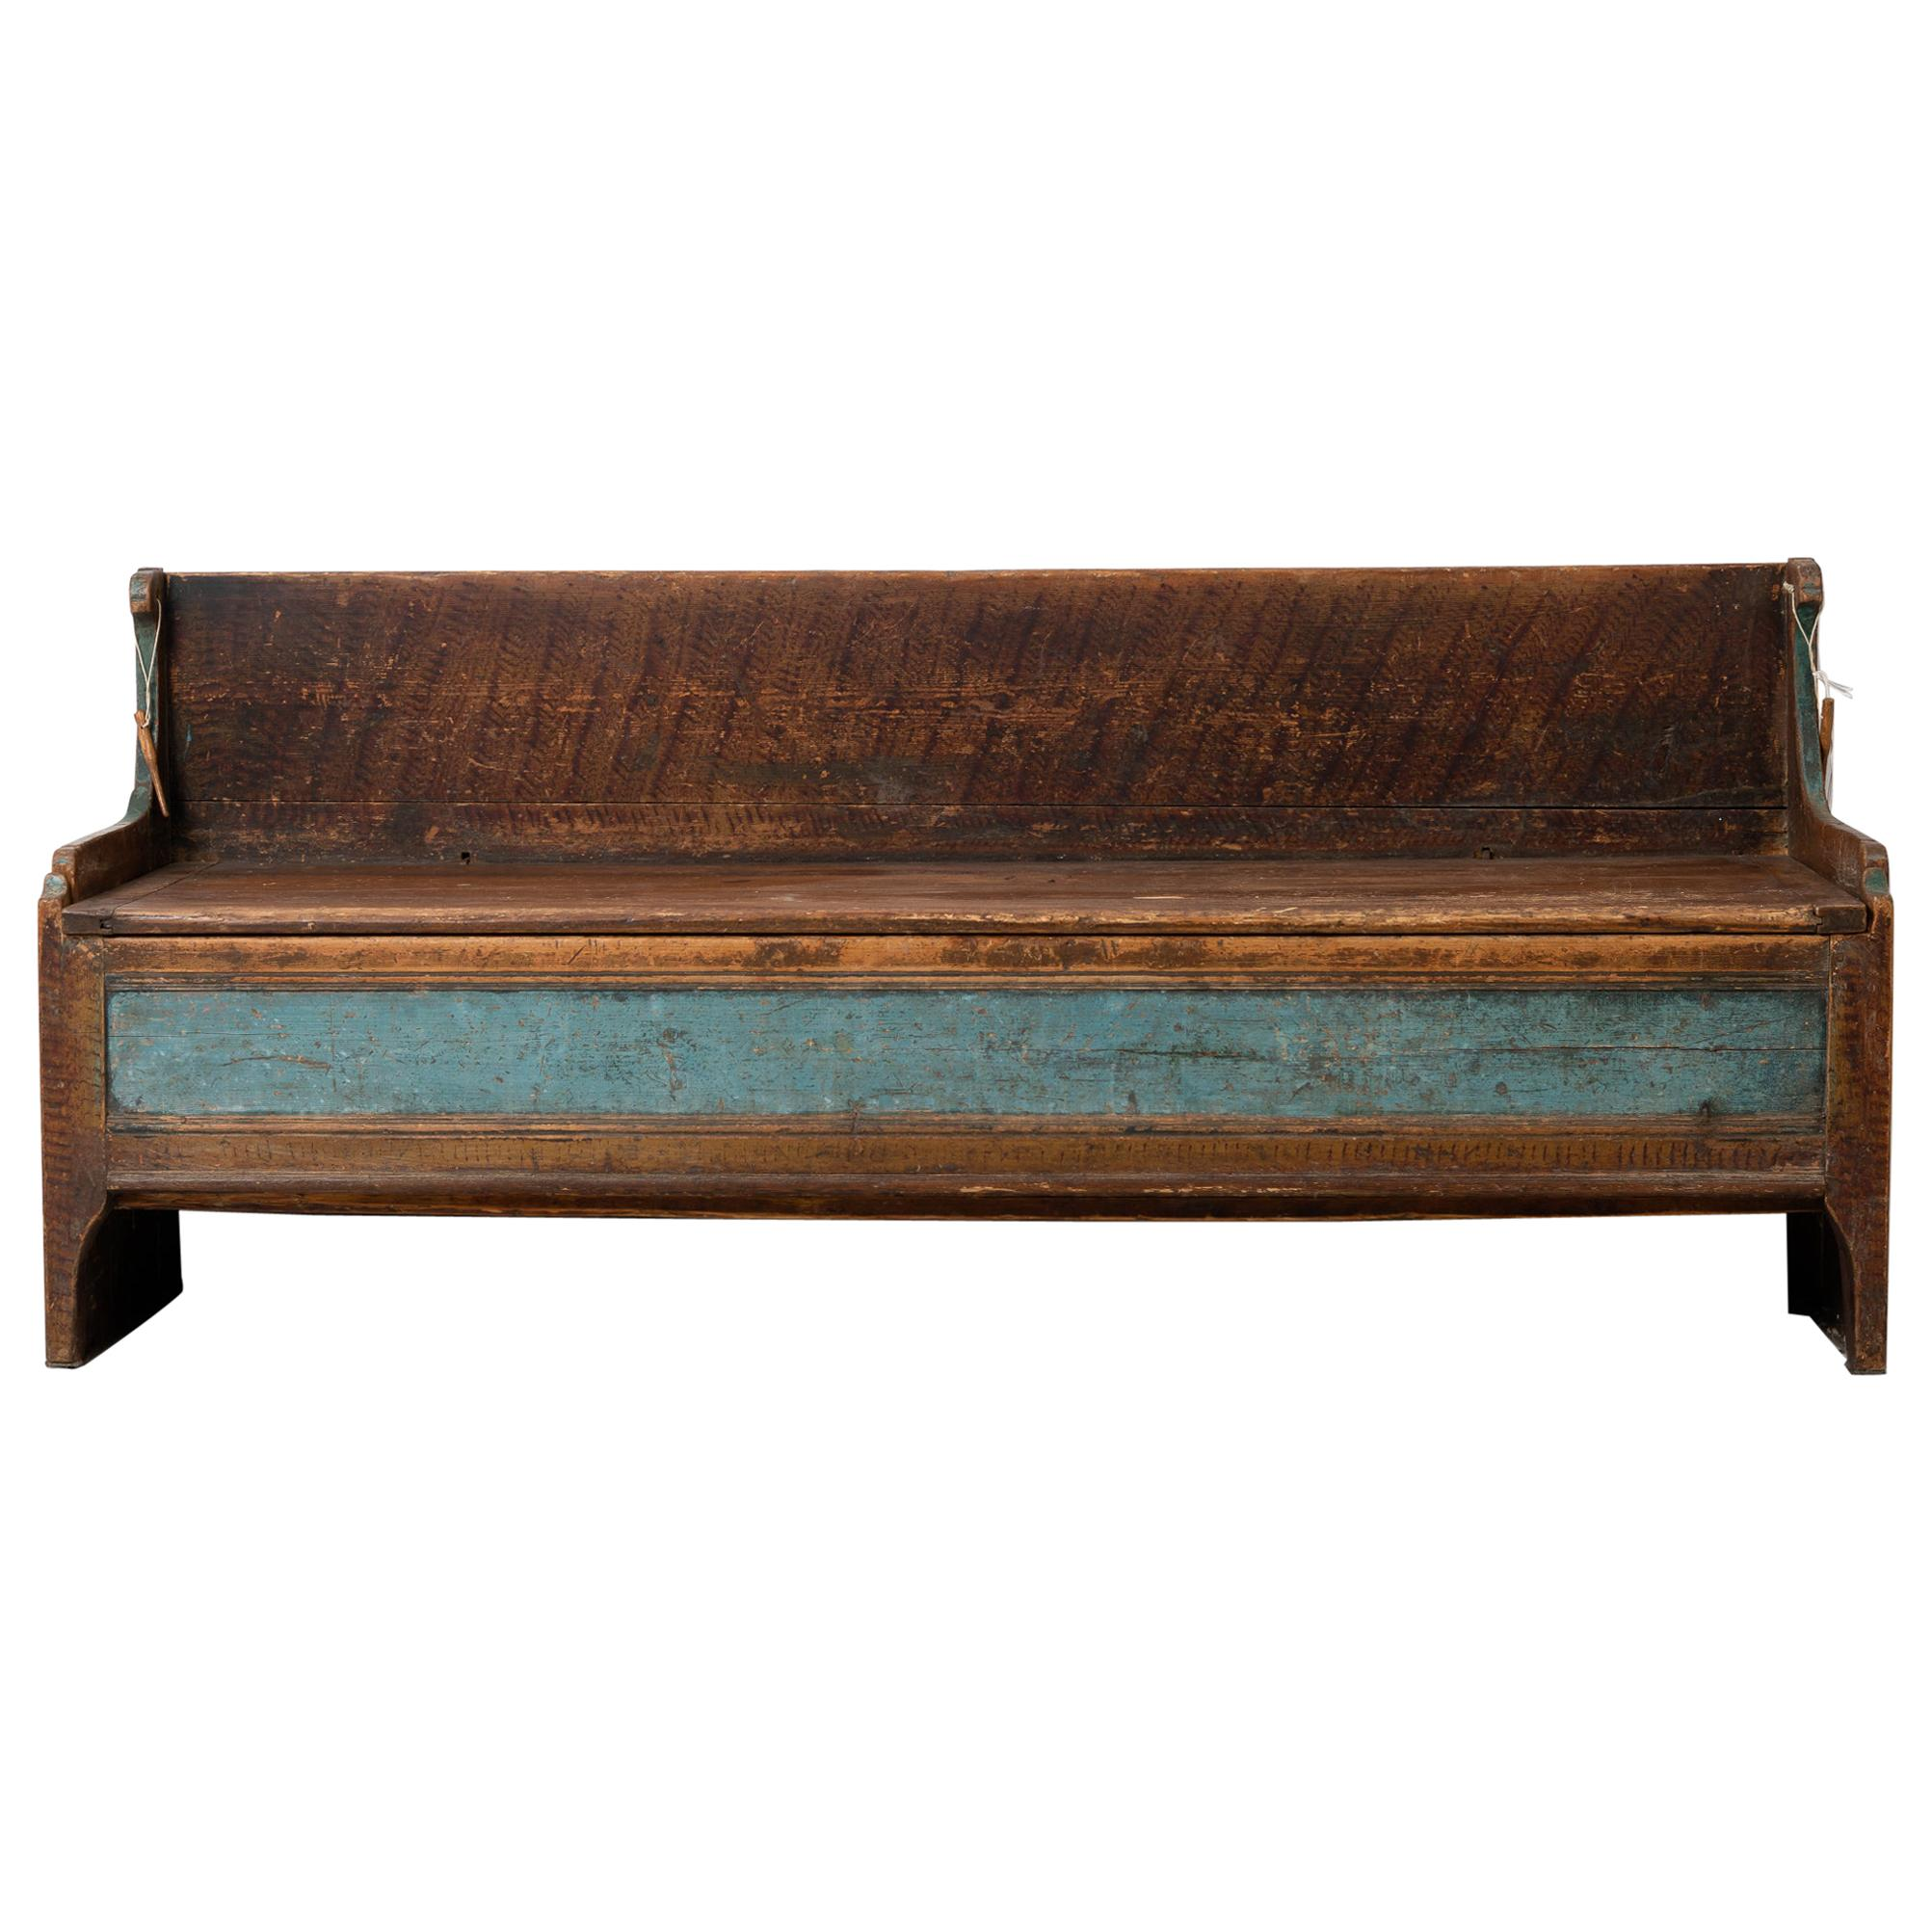 18th Century Swedish Country Bench in Pine